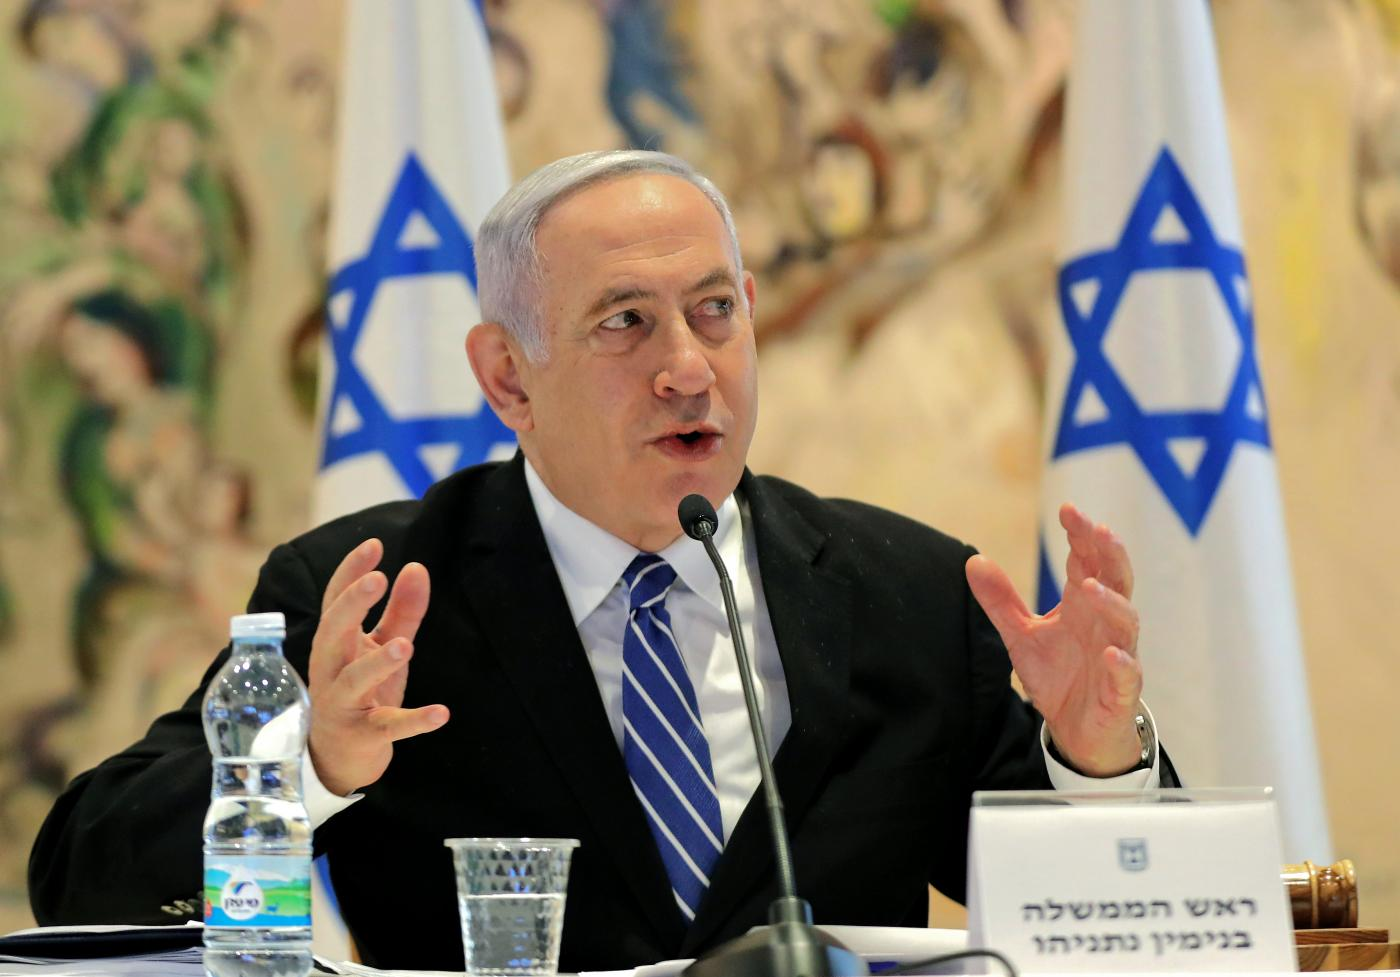 Netanyahu heads to court as 1st sitting Israeli PM on trial